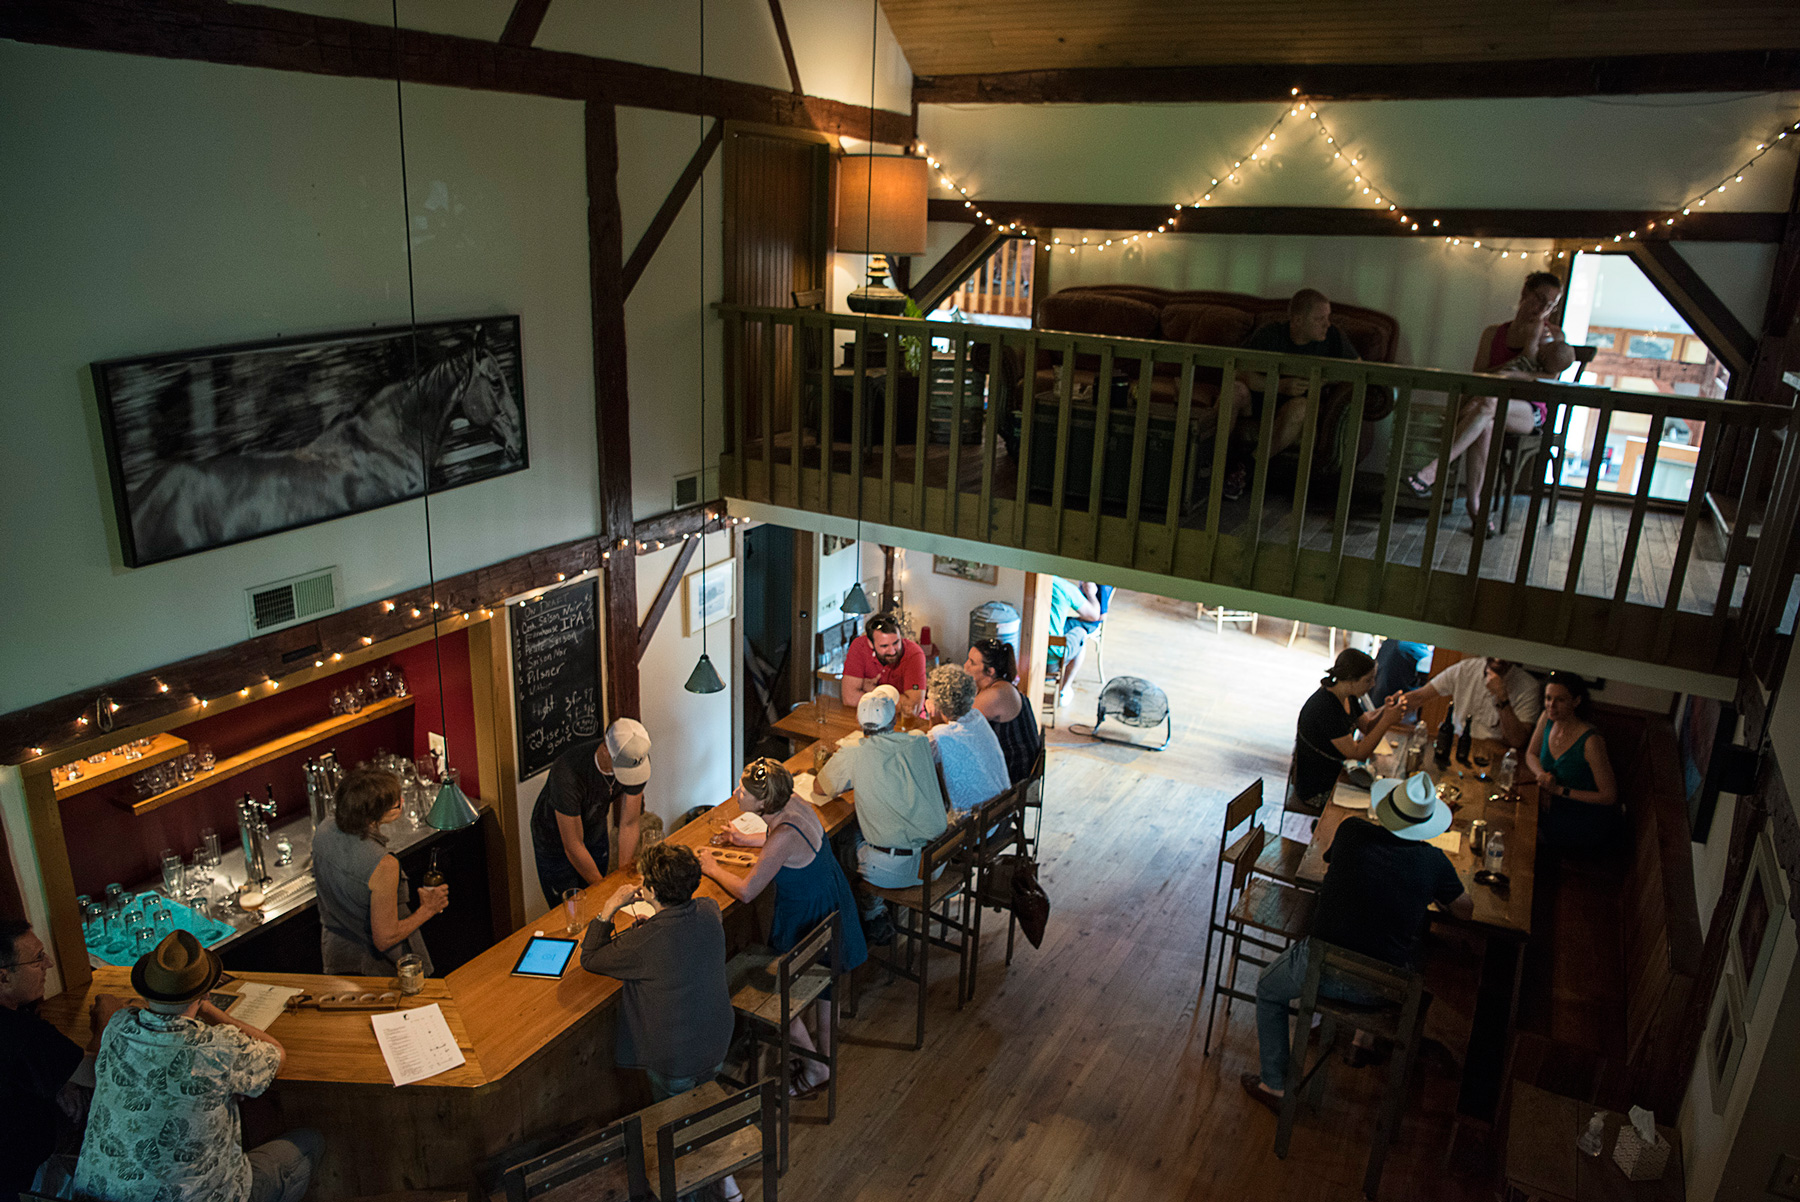 Rockmill Brewery: Plan date with kids at picturesque beer haven in Lancaster